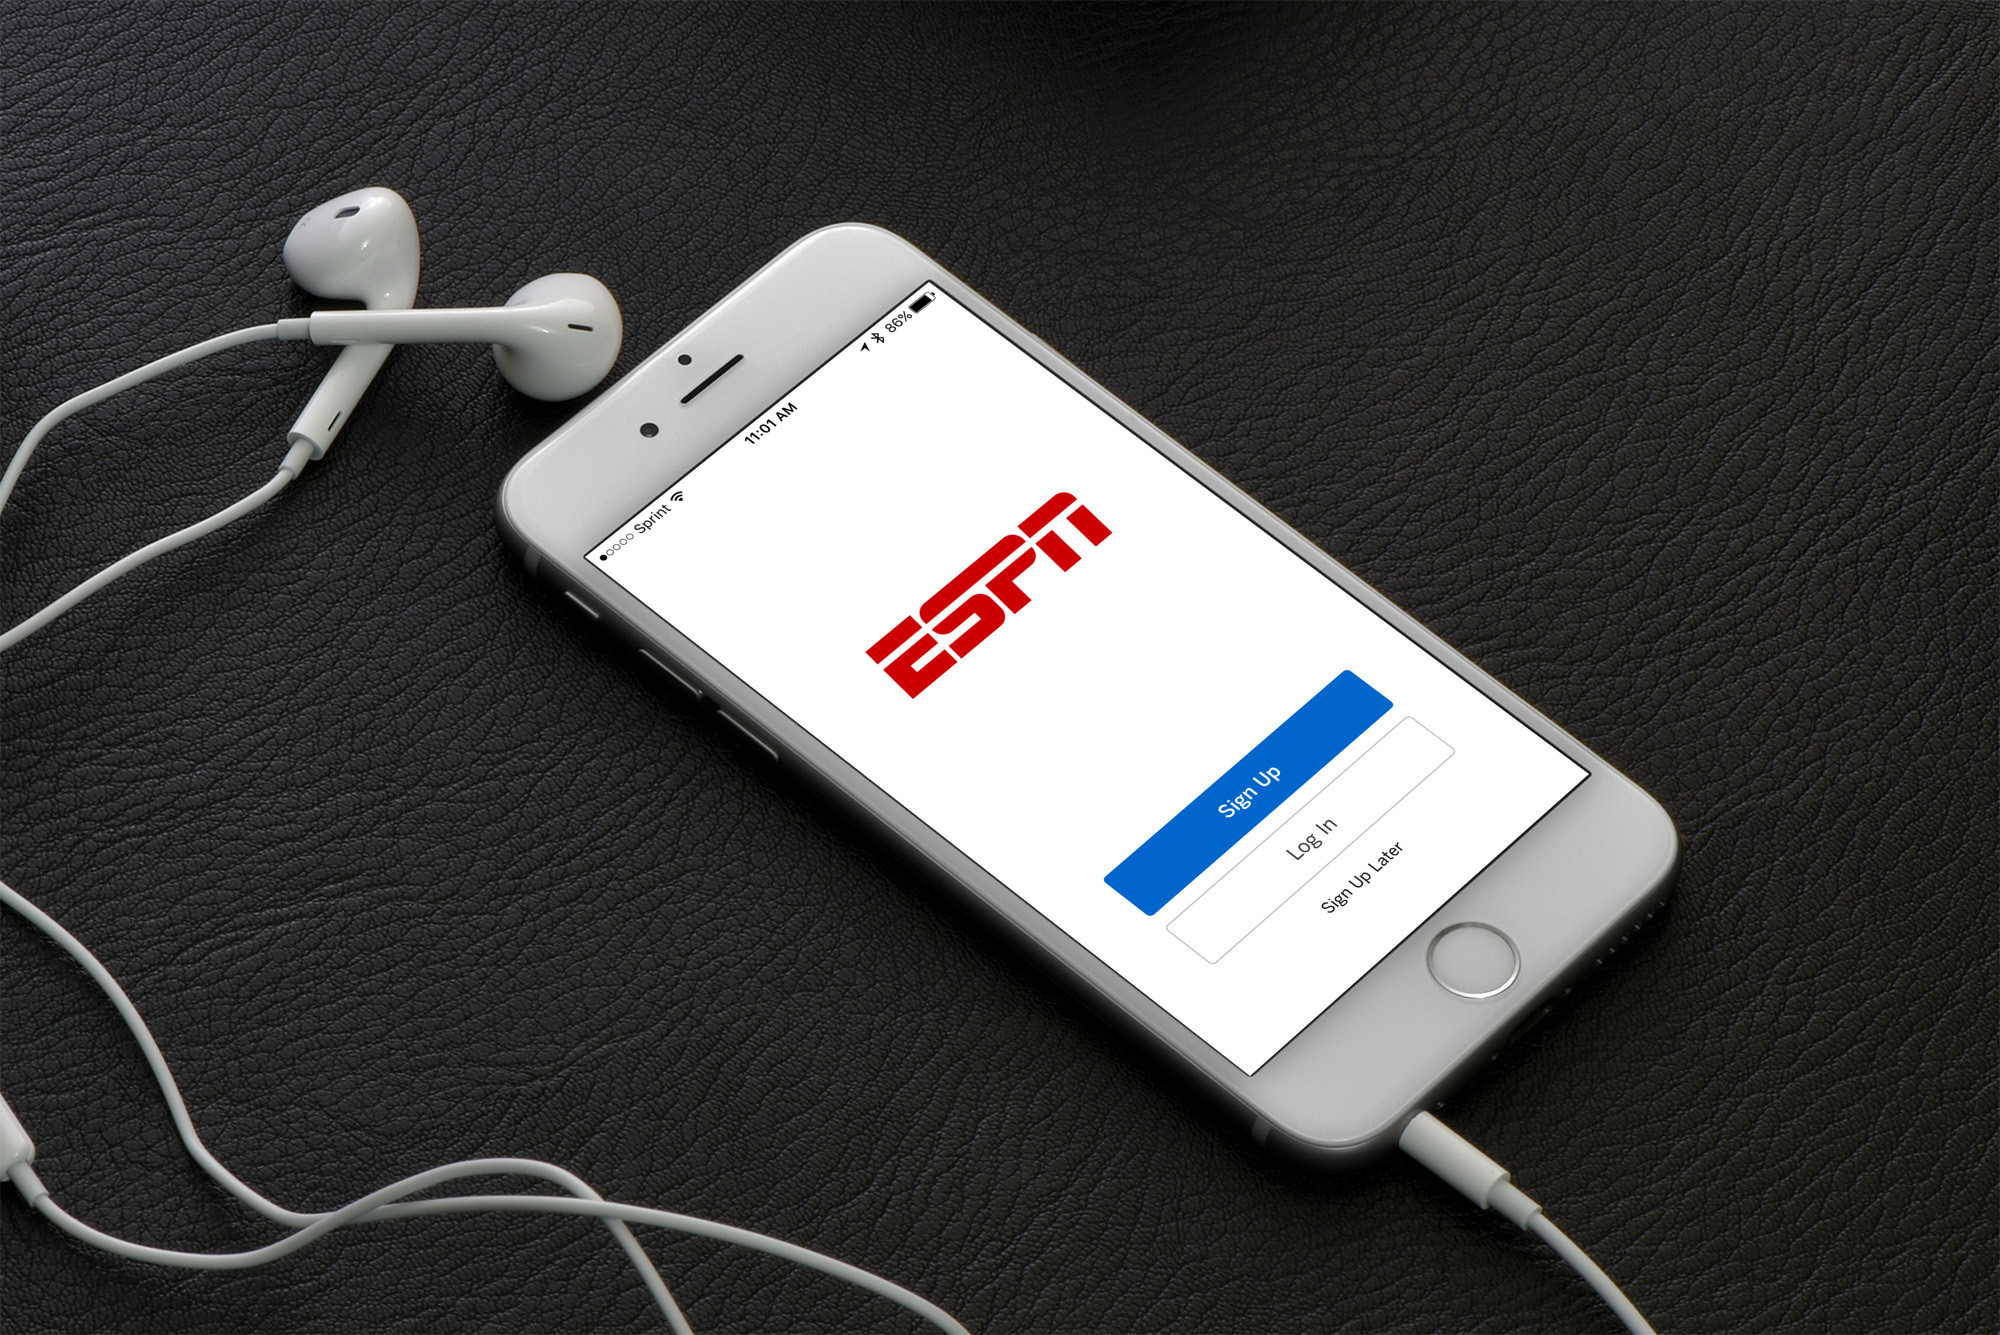 Subscribe to your favorite ESPN podcasts with a recent update